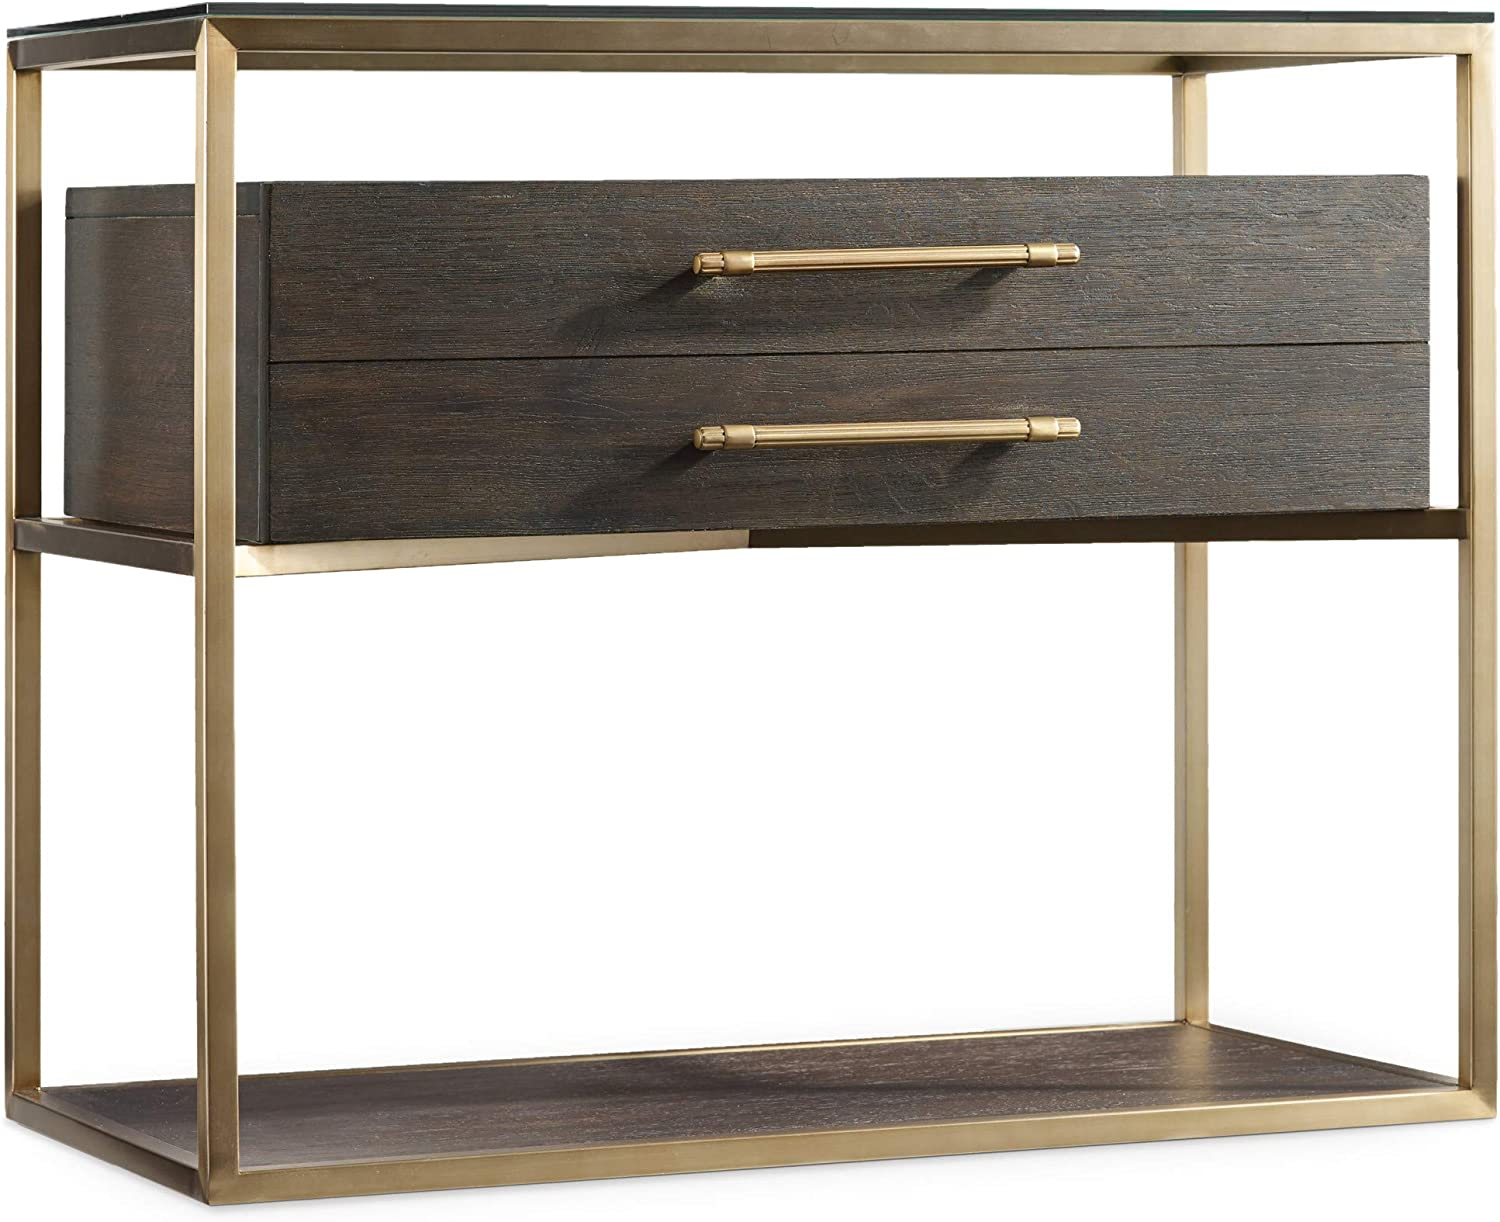 Hooker Furniture Curata Nightstand in Midnight Brown and Brushed Brass